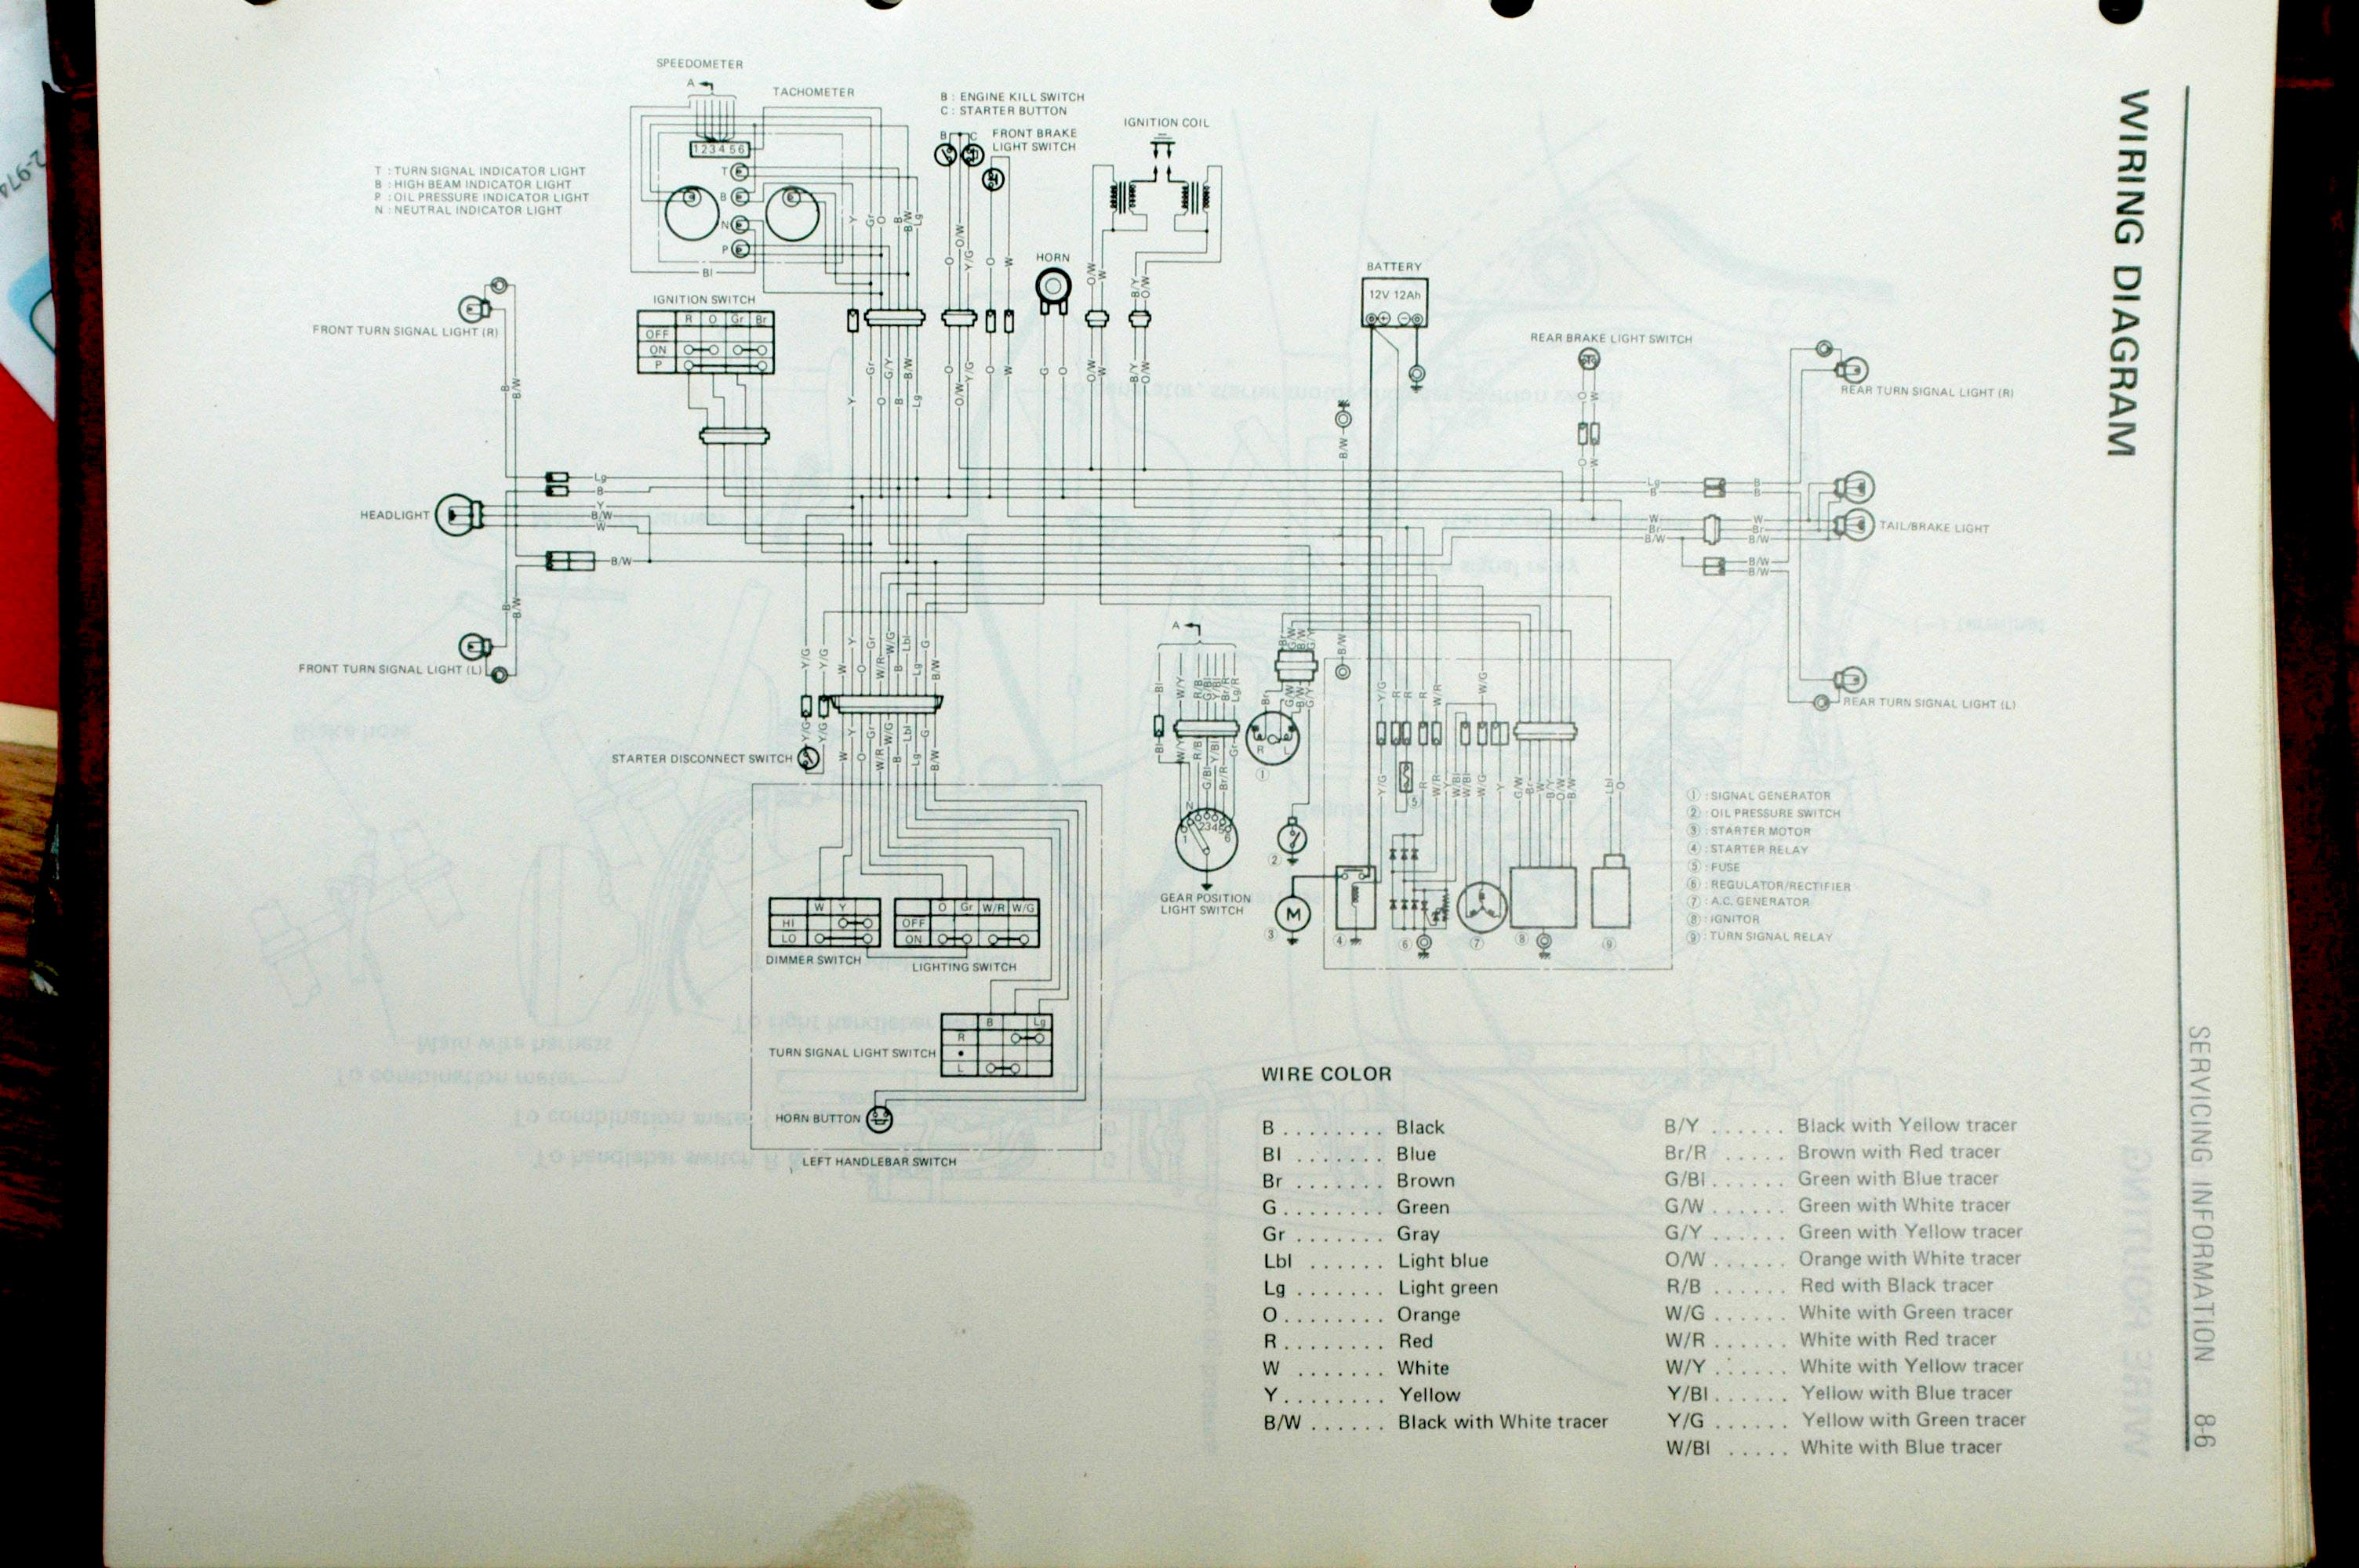 Old Fashioned Wiring Diagram Suzuki Rf900r Illustration - Wiring ...